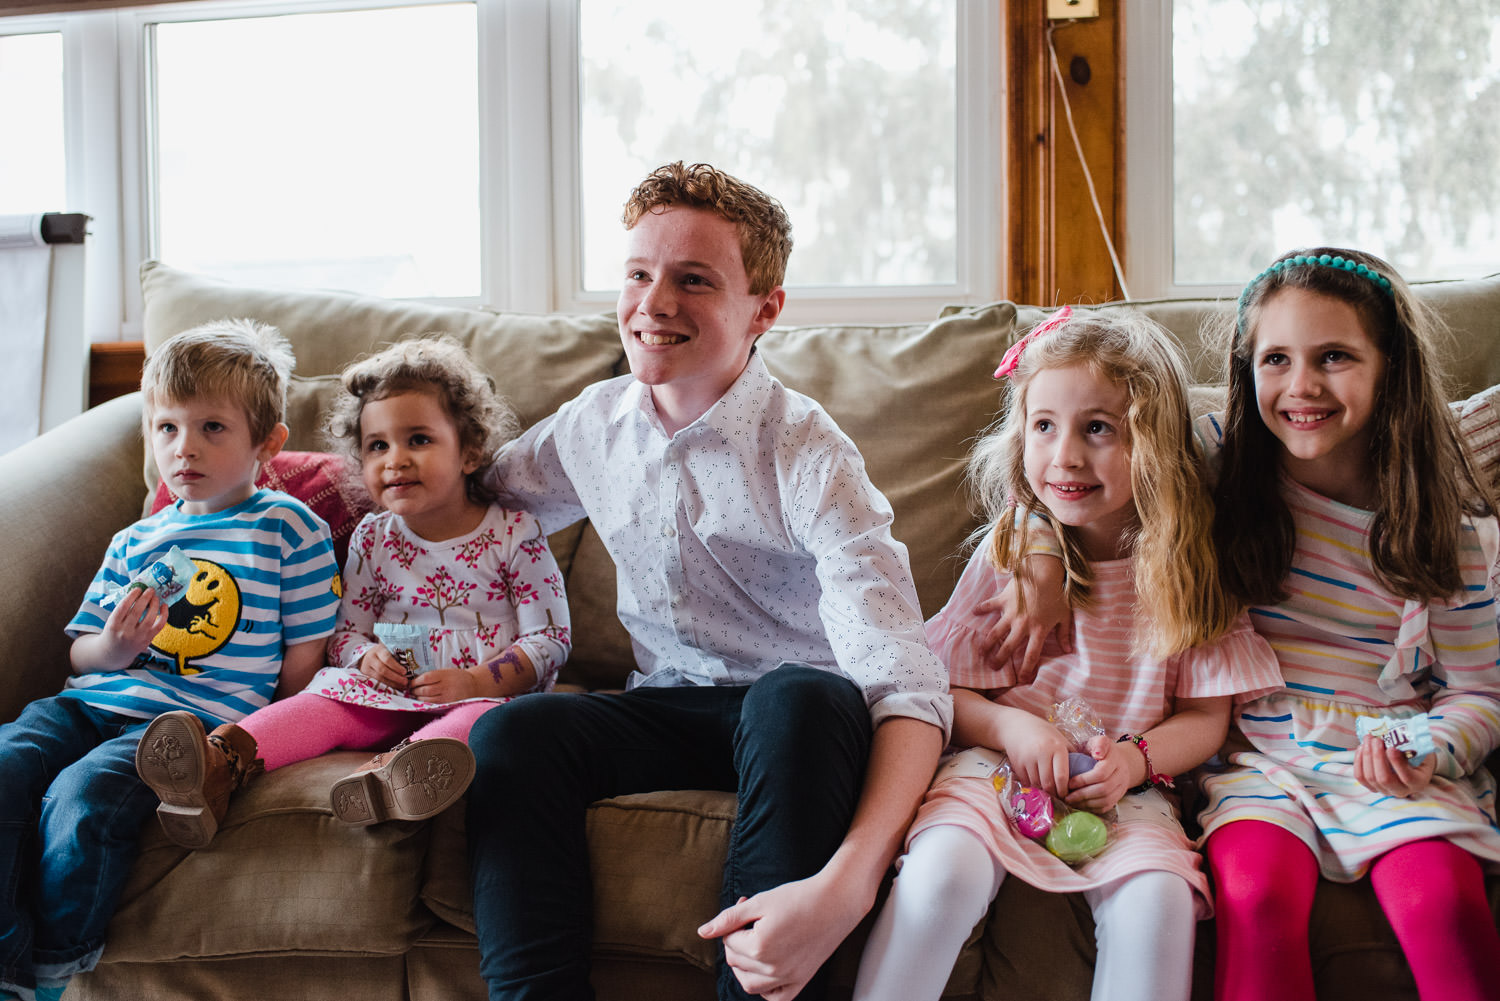 Children pose for a portrait on a couch.